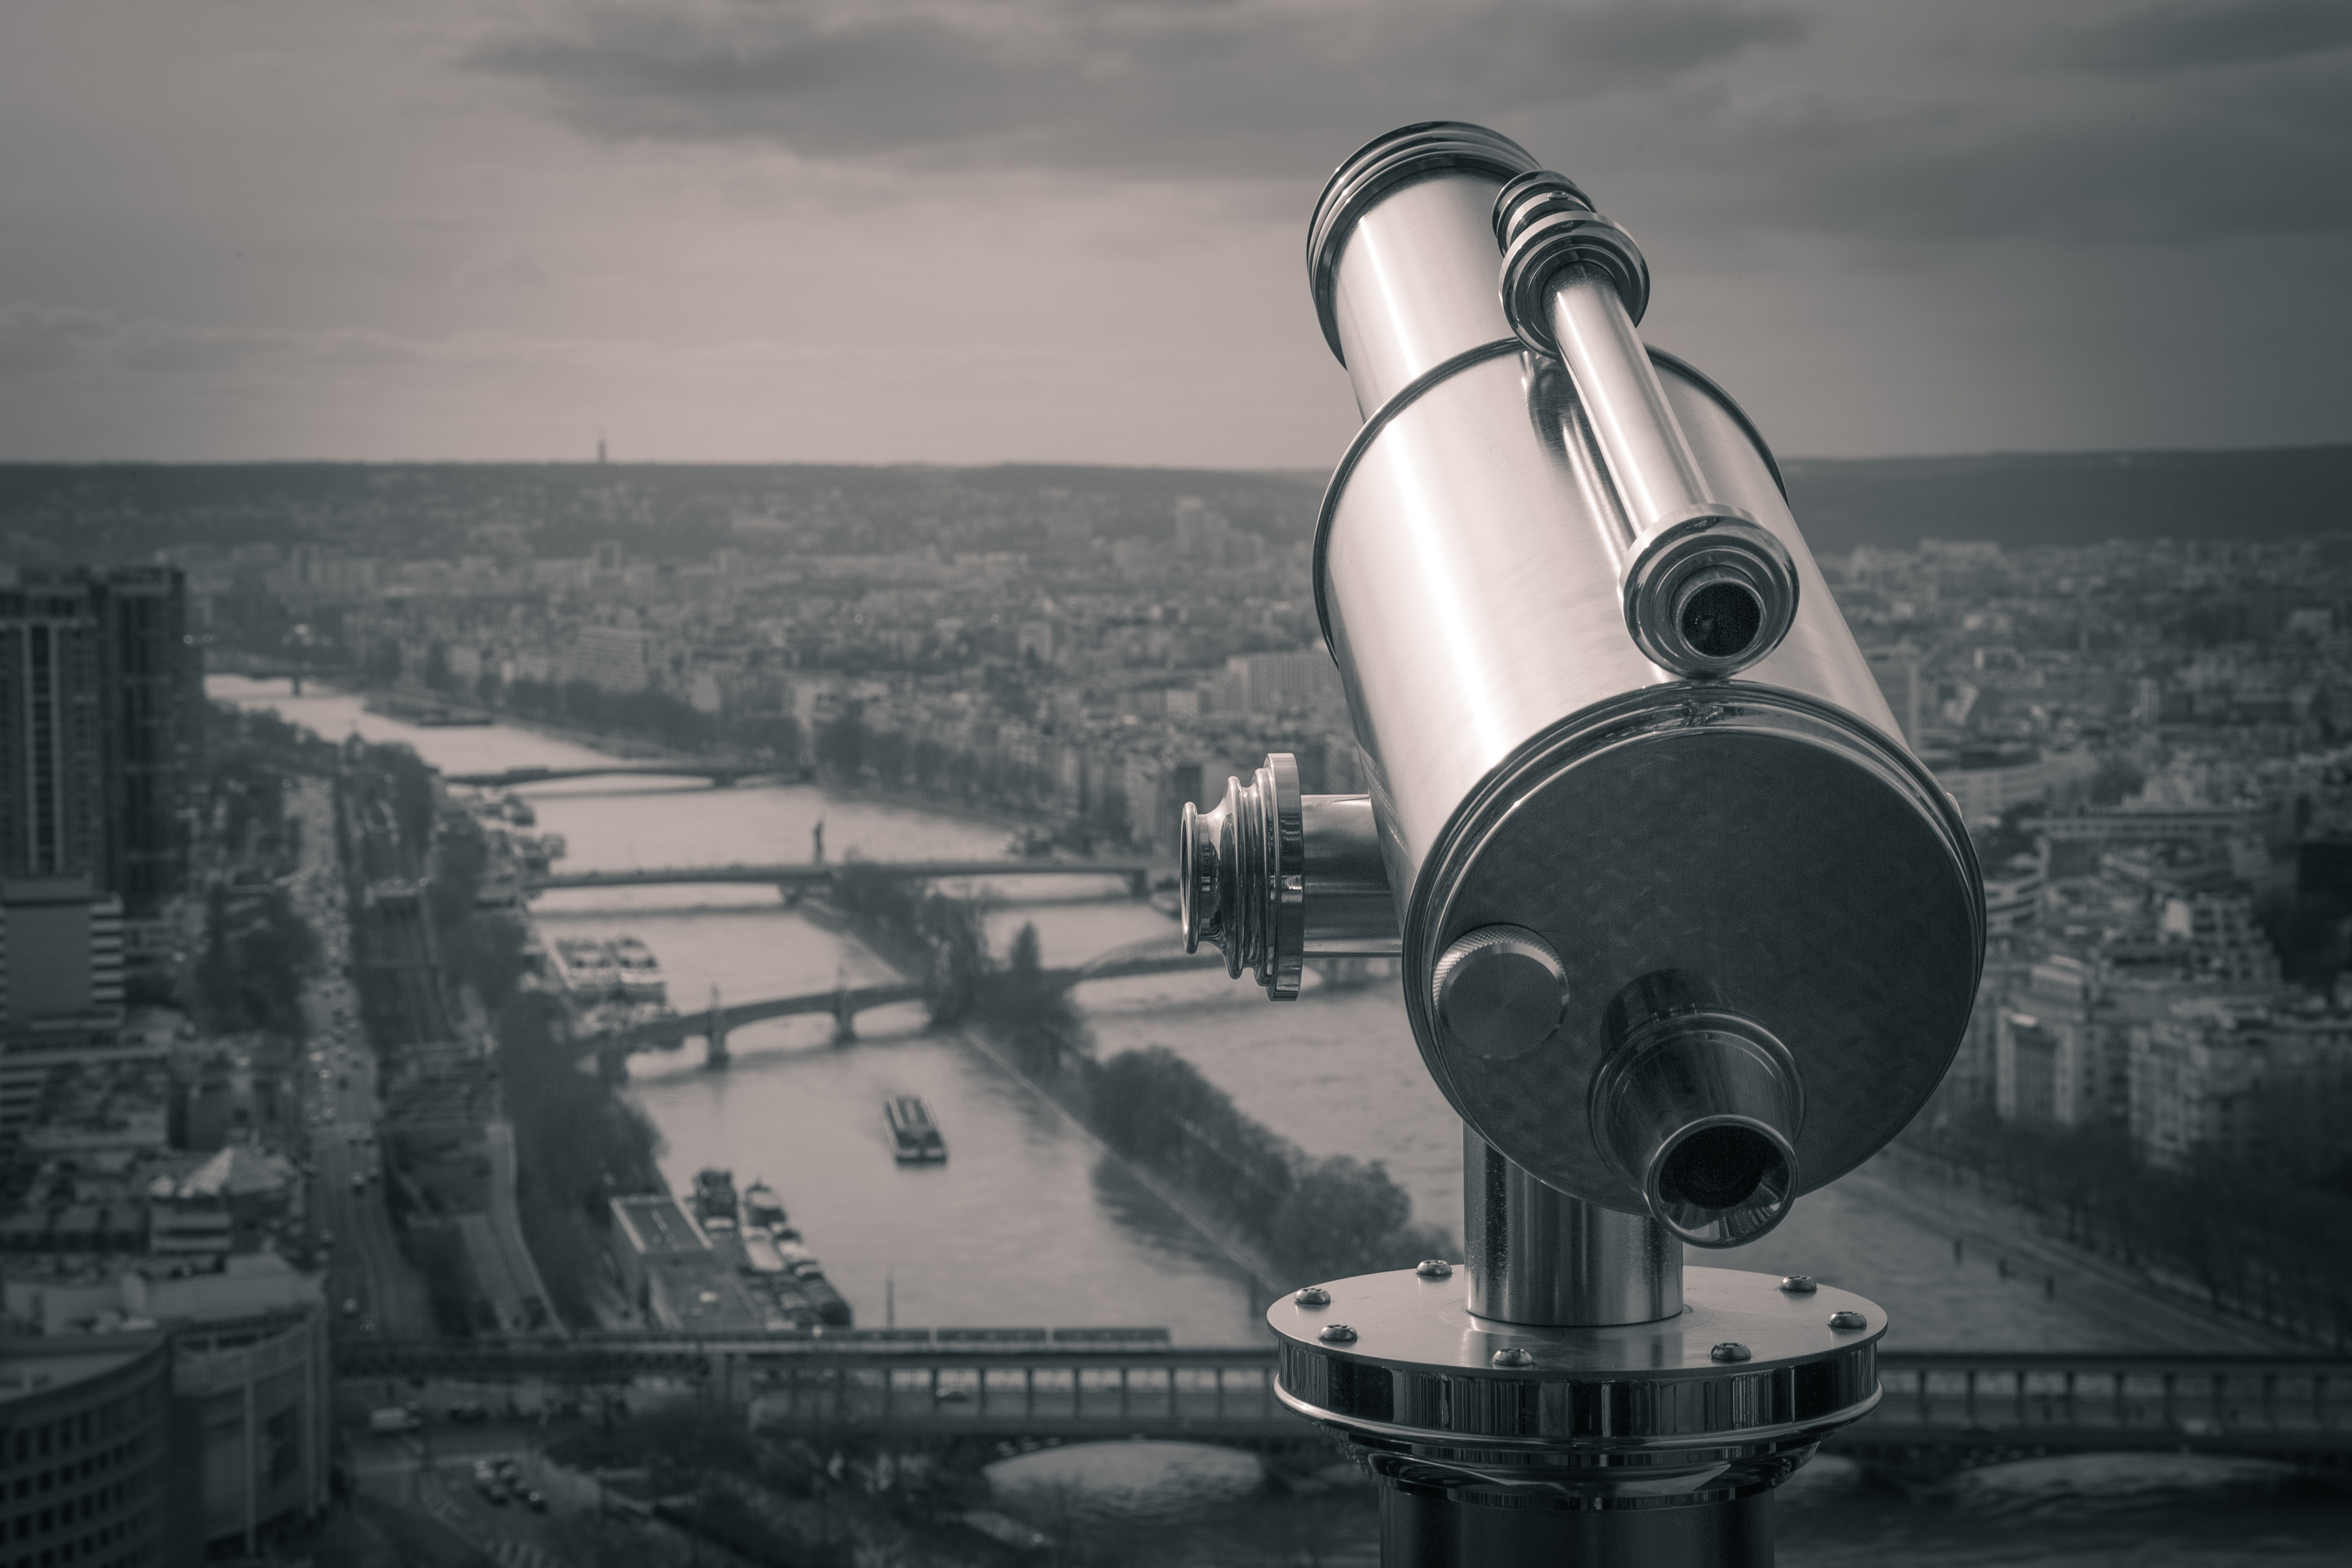 Grayscale photography of observation telescope overlooking city riverbank